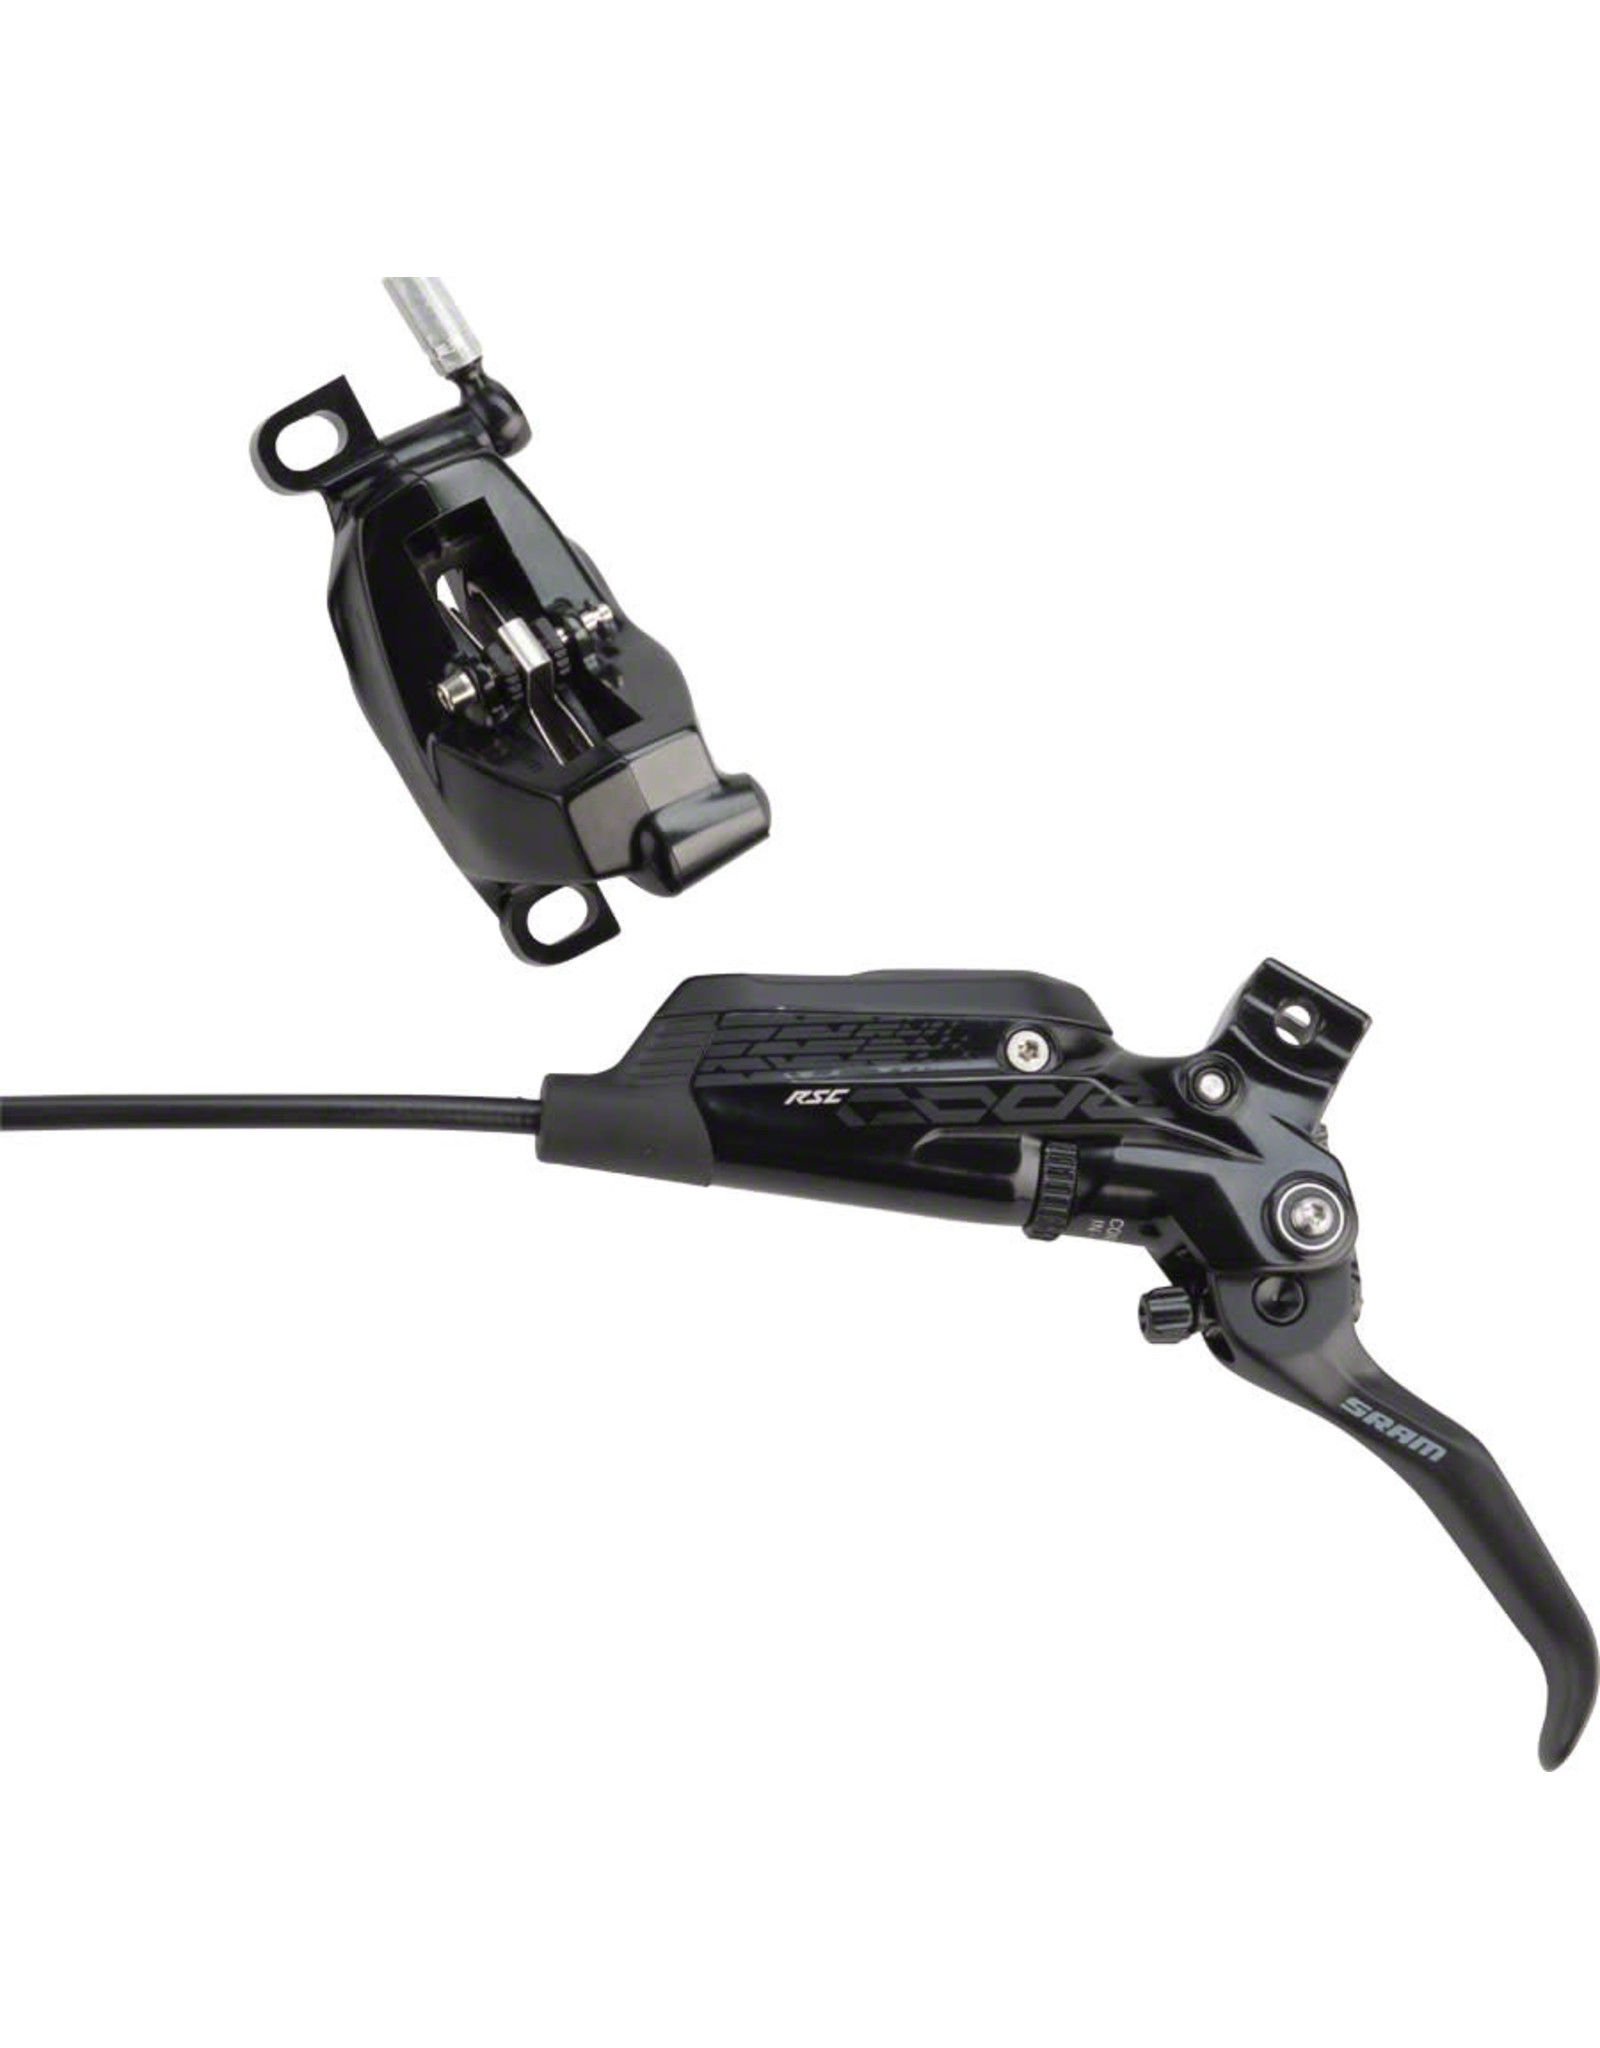 SRAM SRAM Code RSC Disc Brake and Lever - Front or Rear, Hydraulic, Post Mount, Black, A1